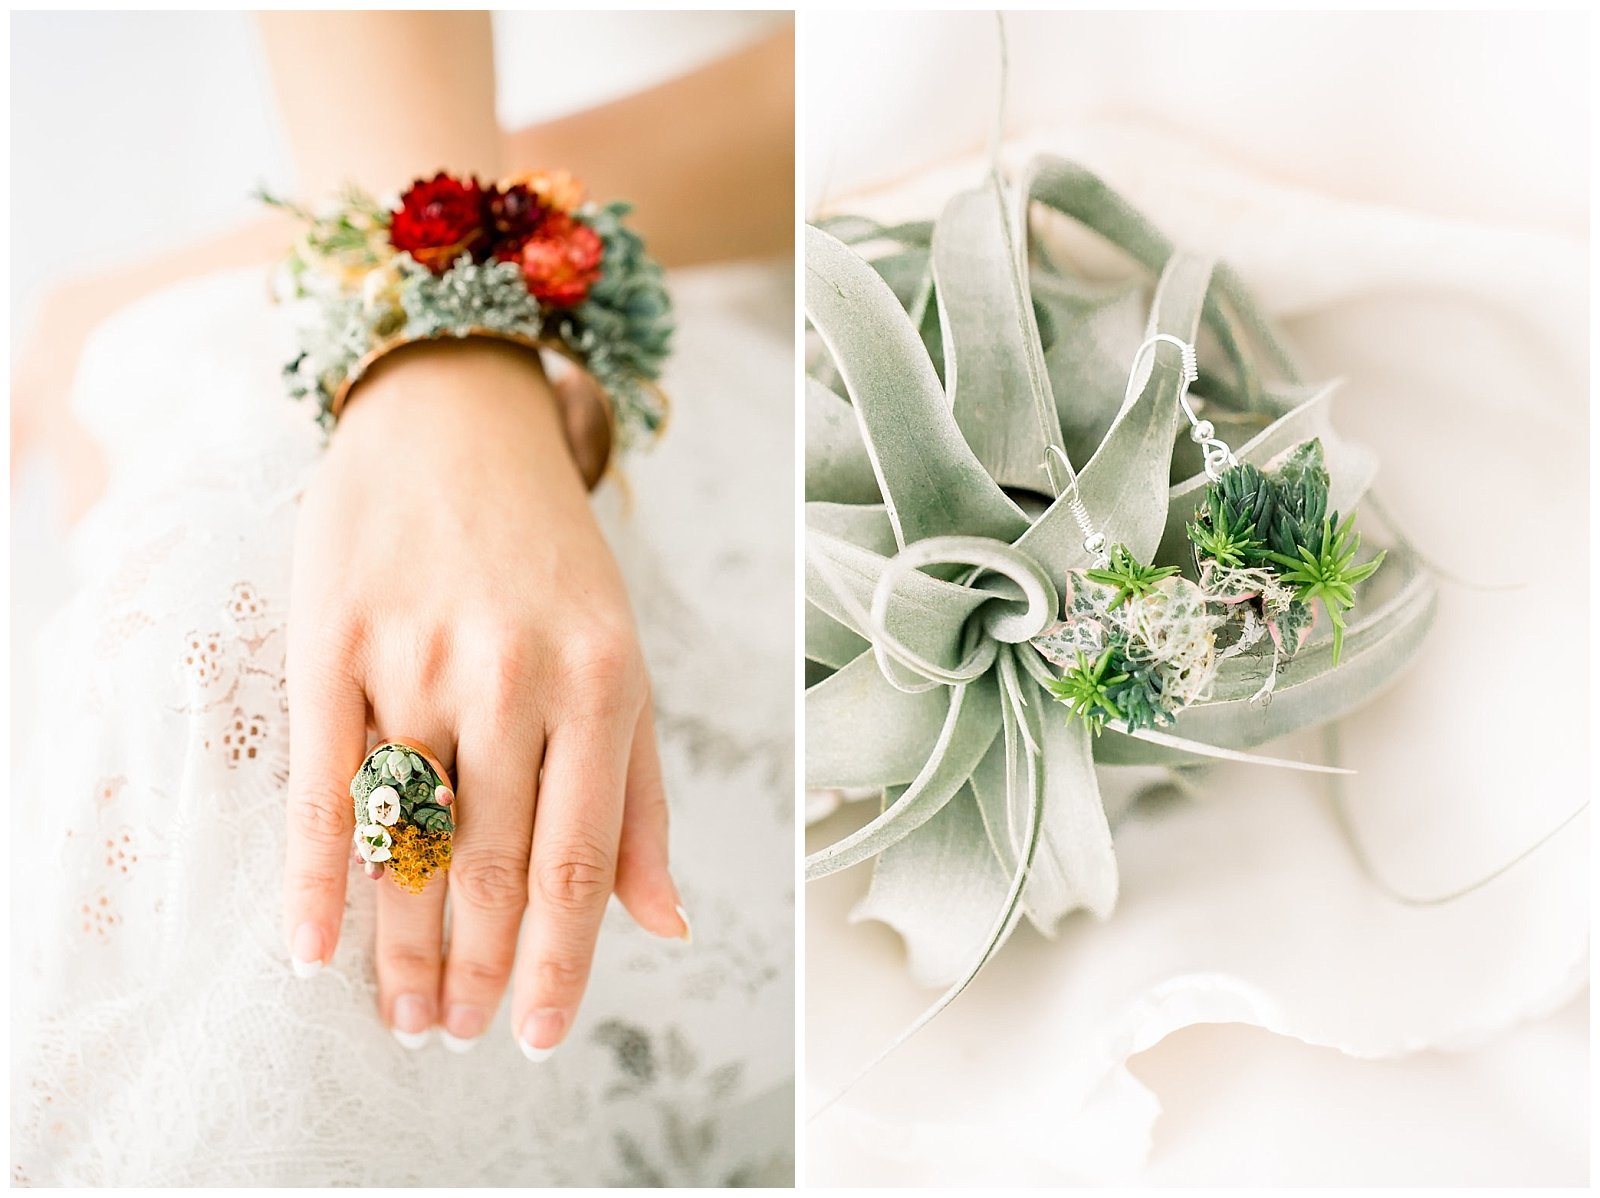 Living-Accessories-styled-shoot-de-joy-photography-epiphany-boutique.jpg